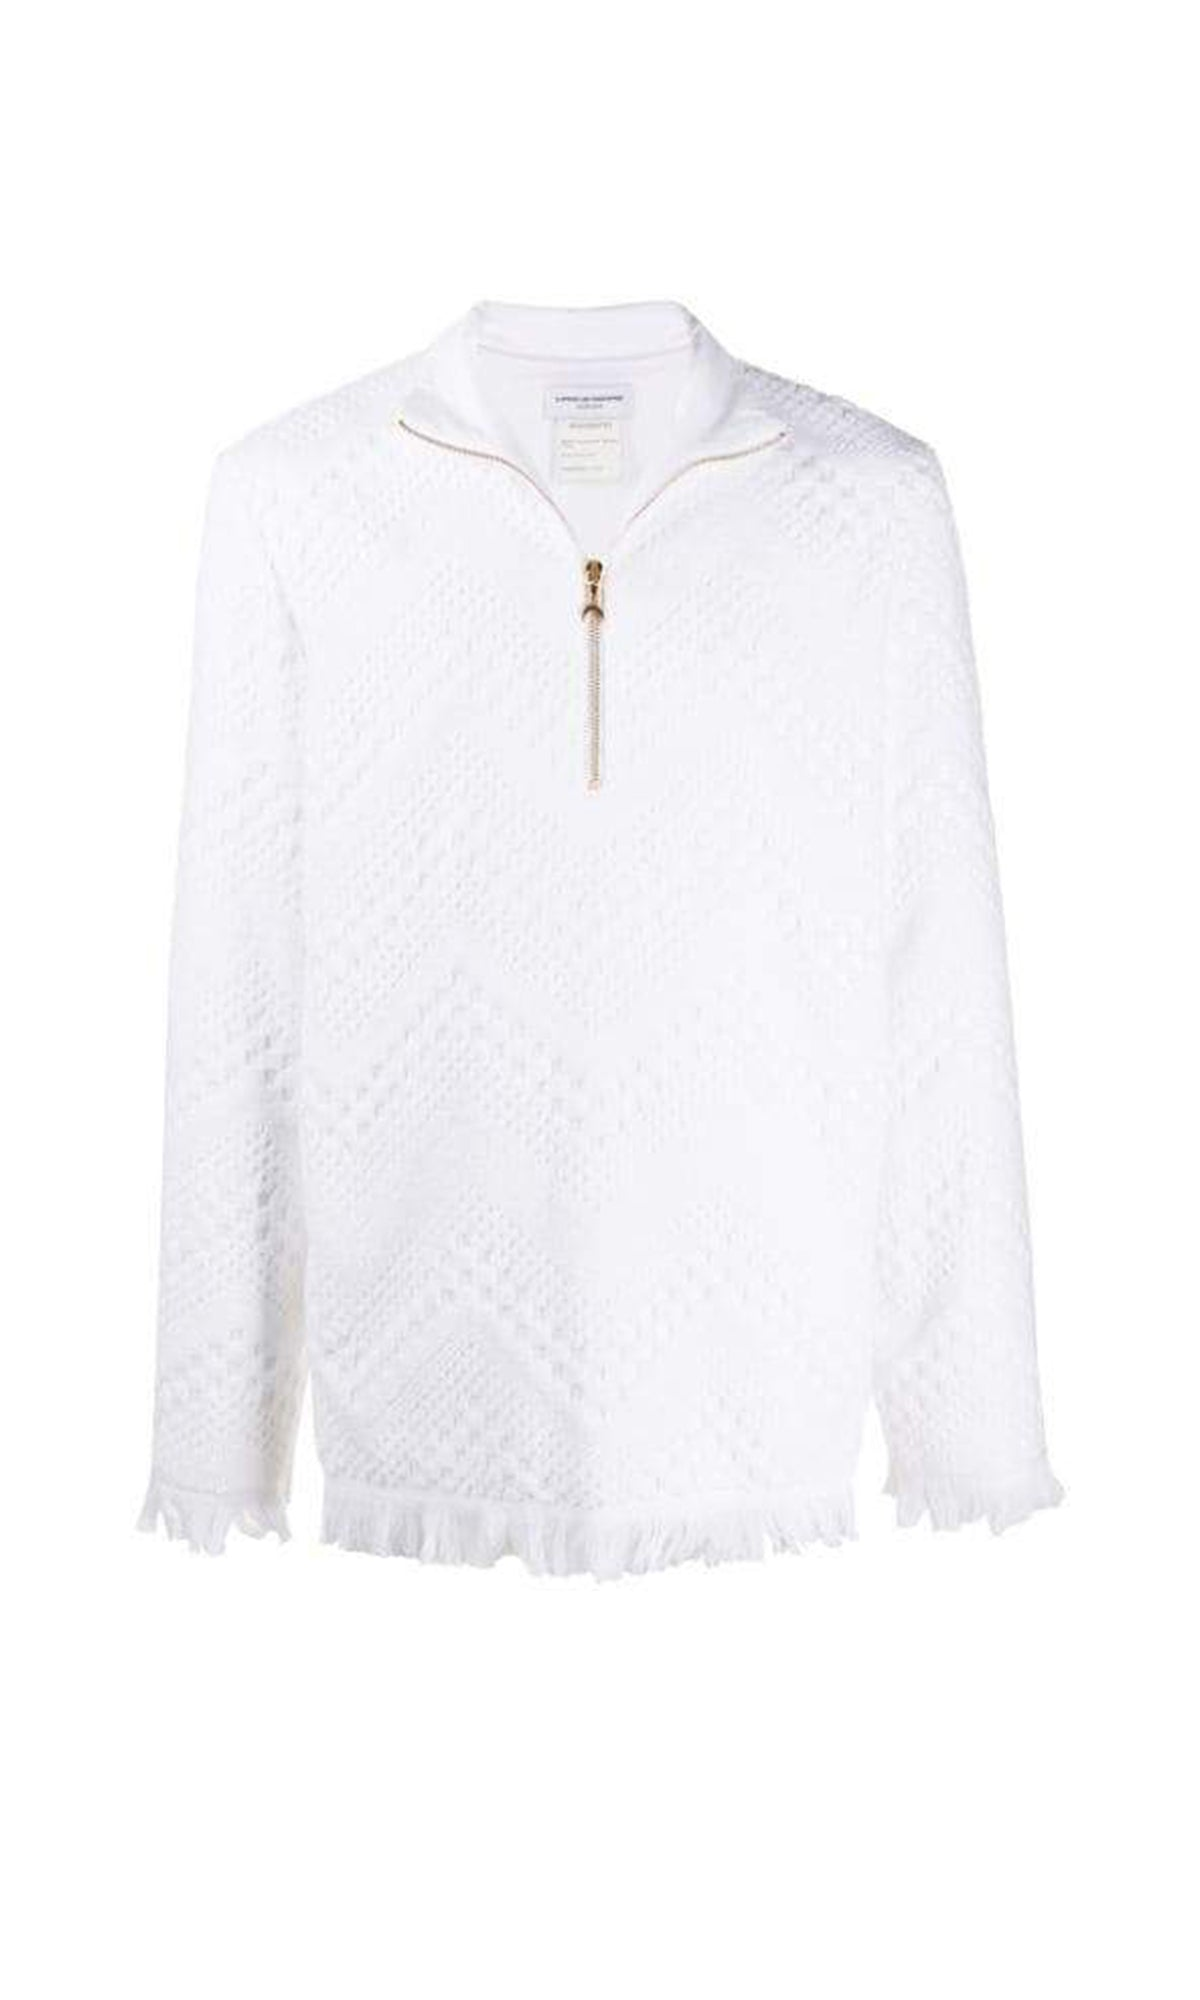 Regenerated Towel Sweater / White Jacquard